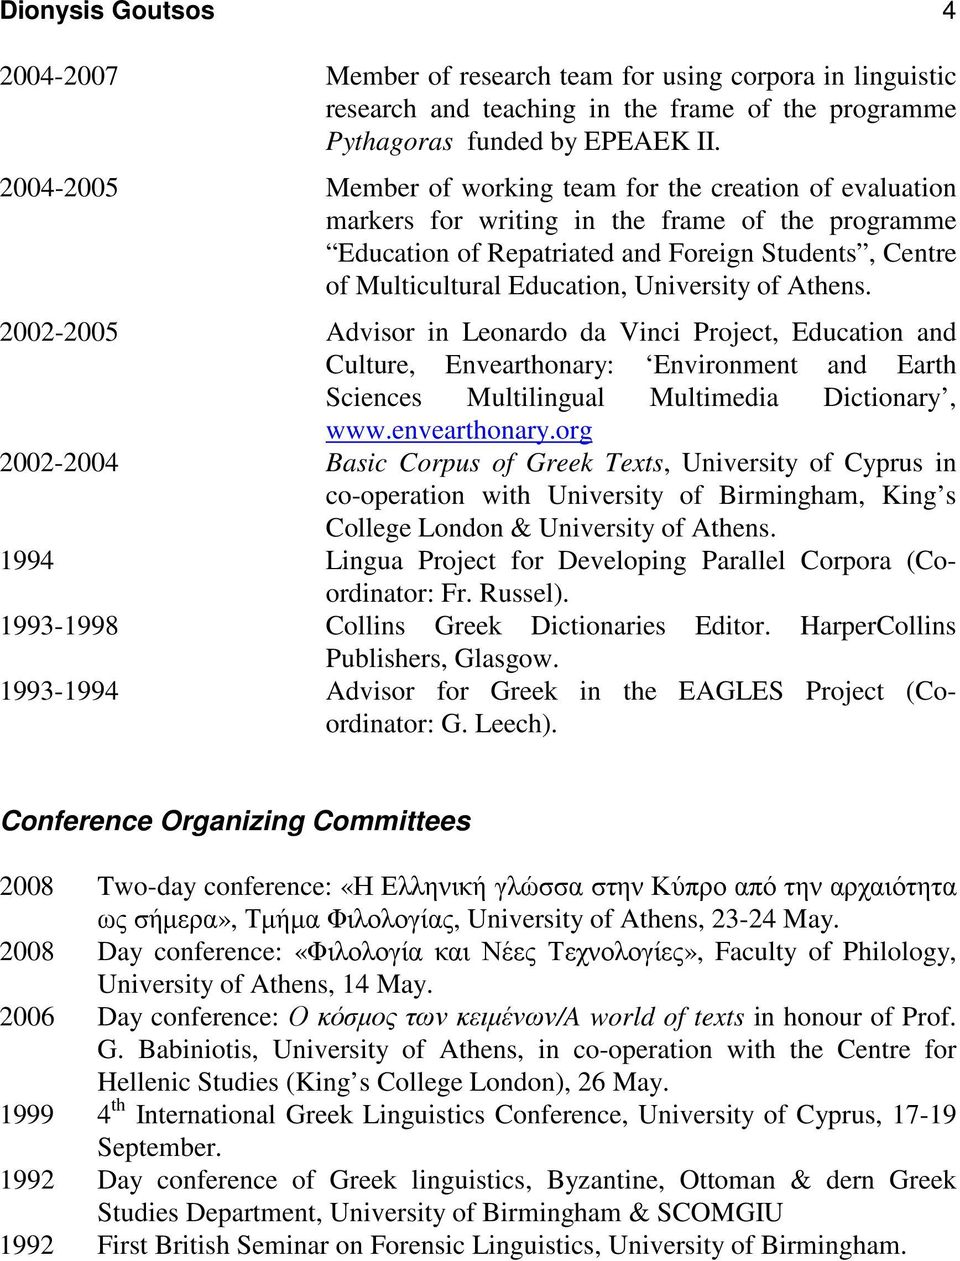 University of Athens. 2002-2005 Advisor in Leonardo da Vinci Project, Education and Culture, Envearthonary: Environment and Earth Sciences Multilingual Multimedia Dictionary, www.envearthonary.